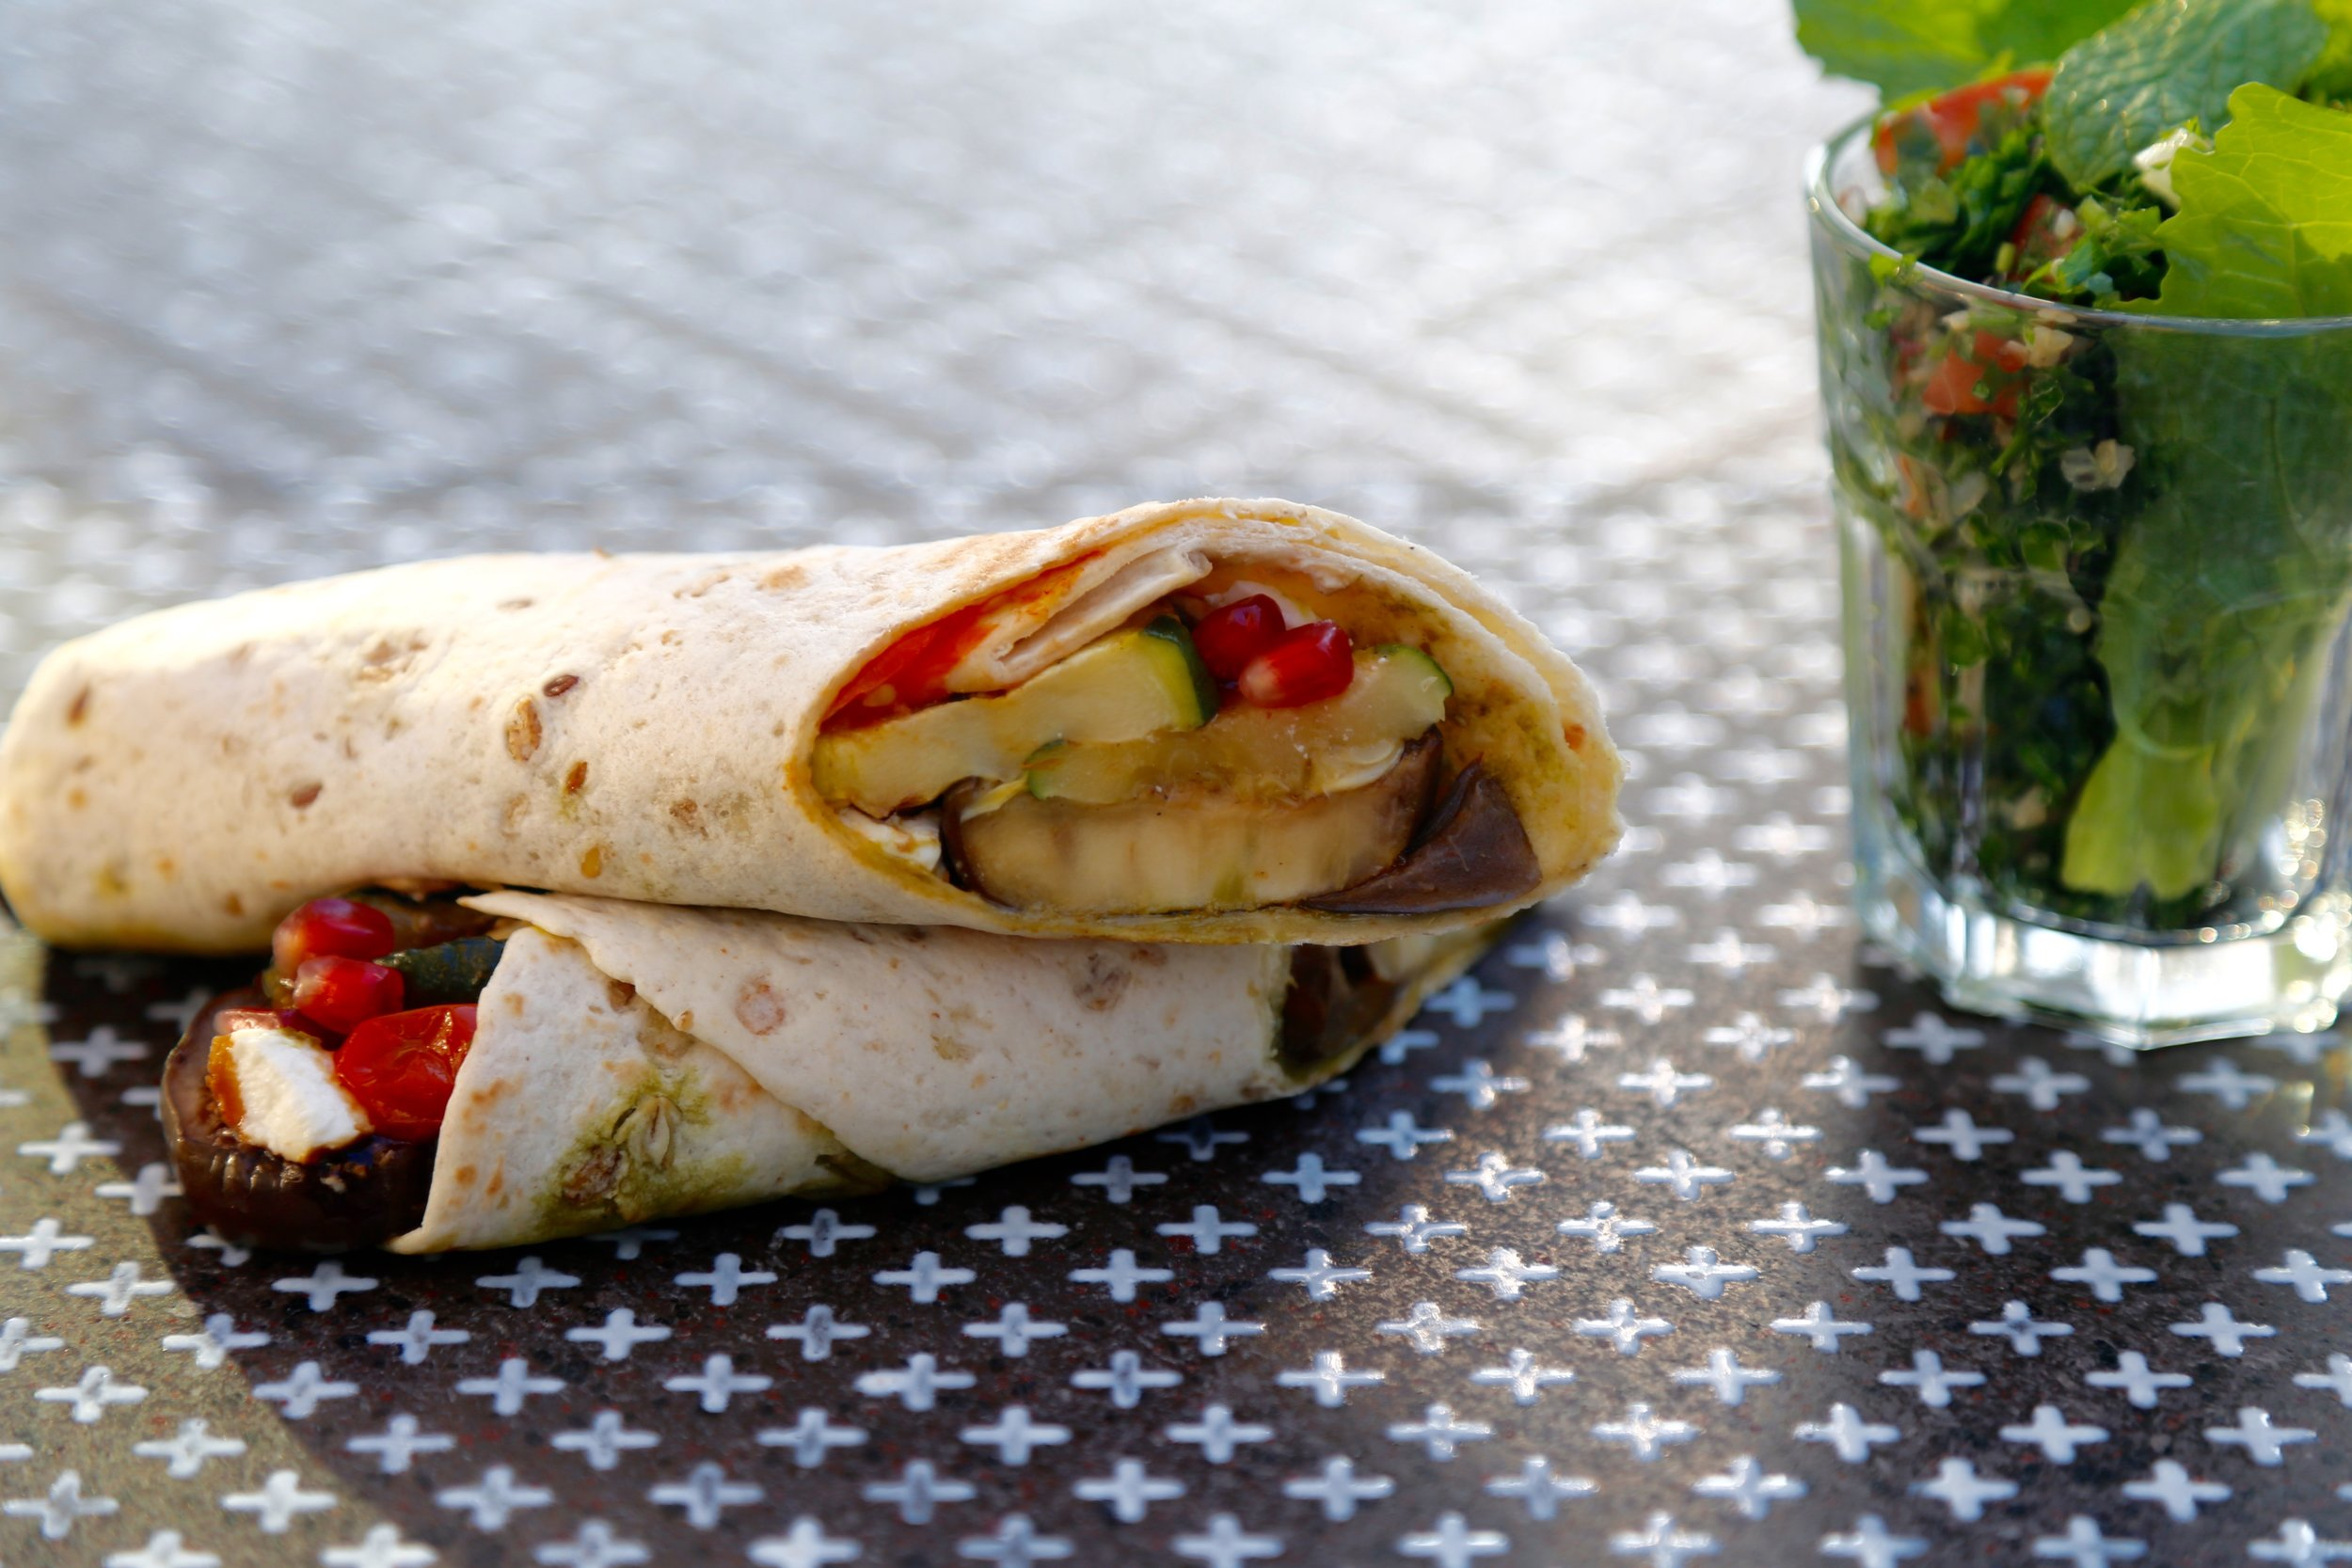 Veggie Wrap: Grilled zucchini, eggplant, tomatoes and feta cheese served with tabbouleh salad